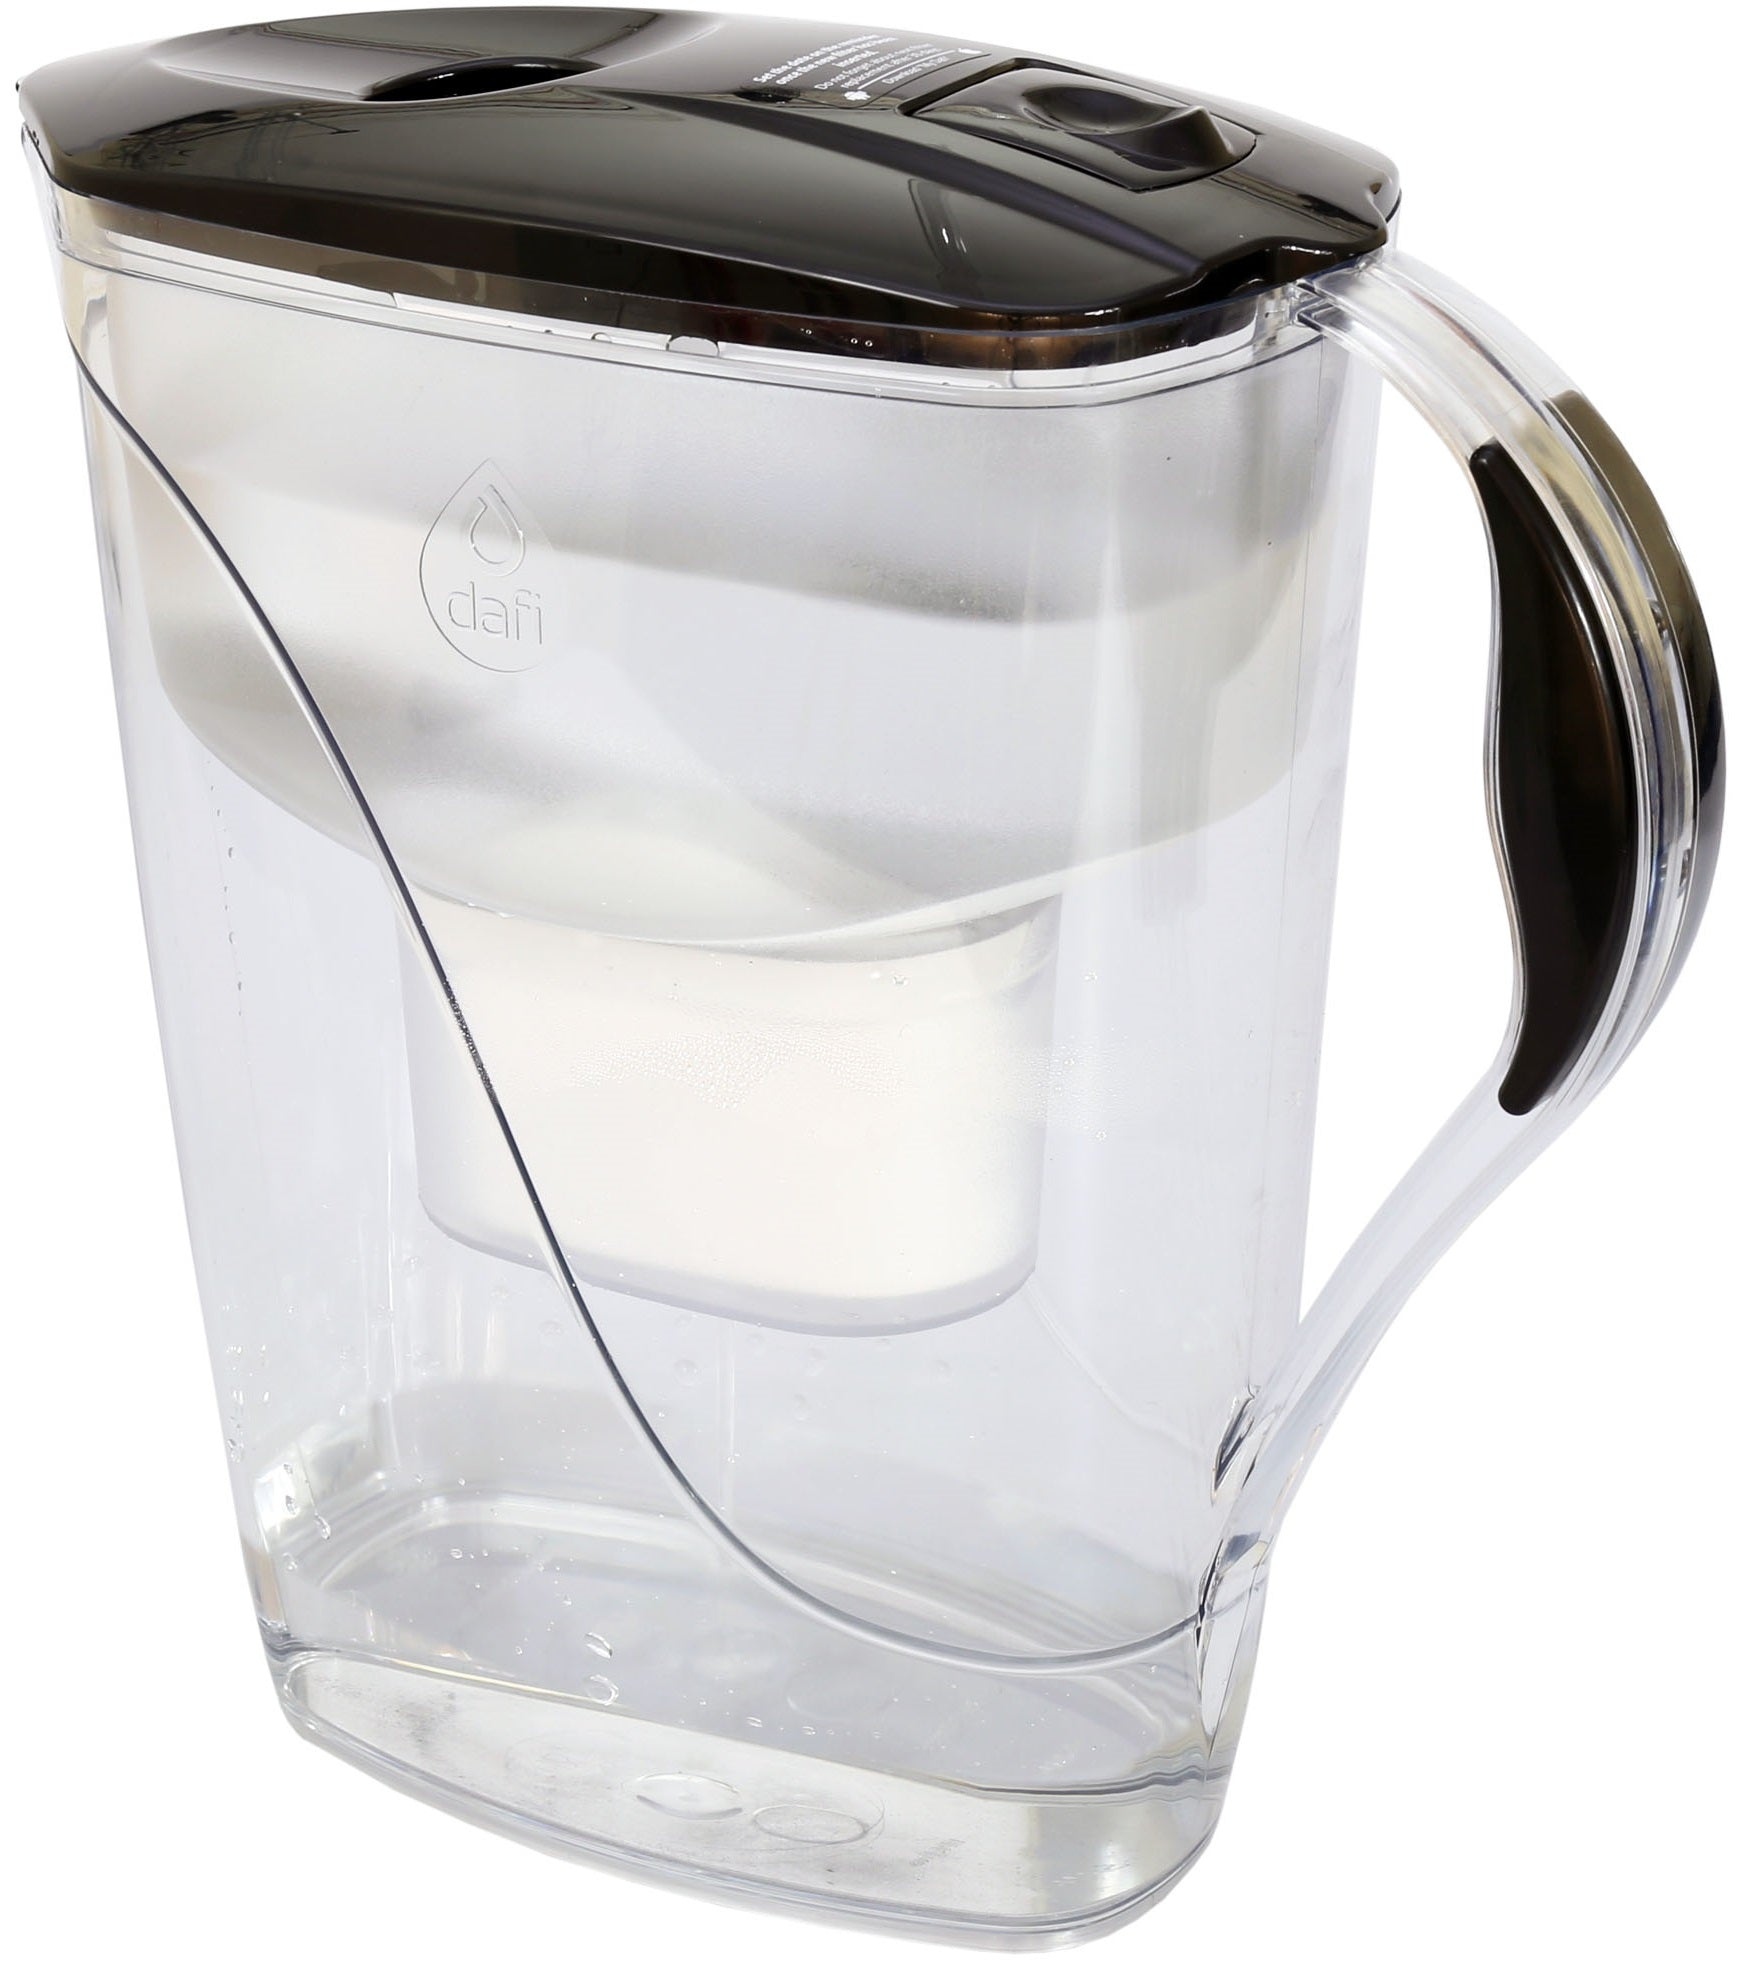 Water Filter Jug Dafi Luna Unimax 3.3L with Free Filter Cartridge - Graphite - Printing Pleasure